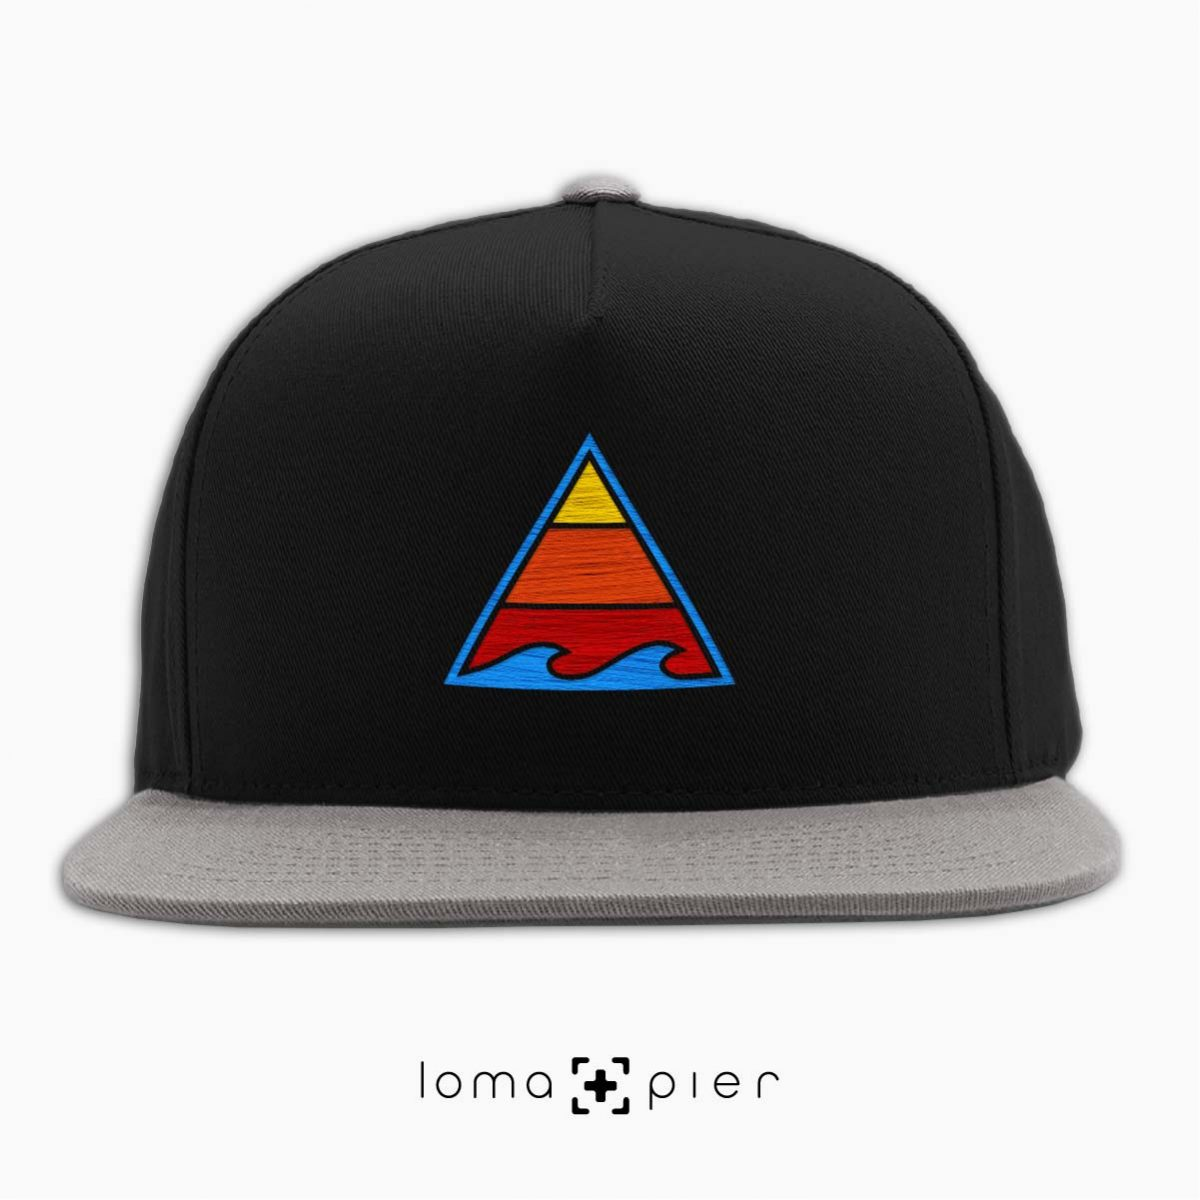 RIDE THAT WAVE hat in black grey by loma+pier hat store